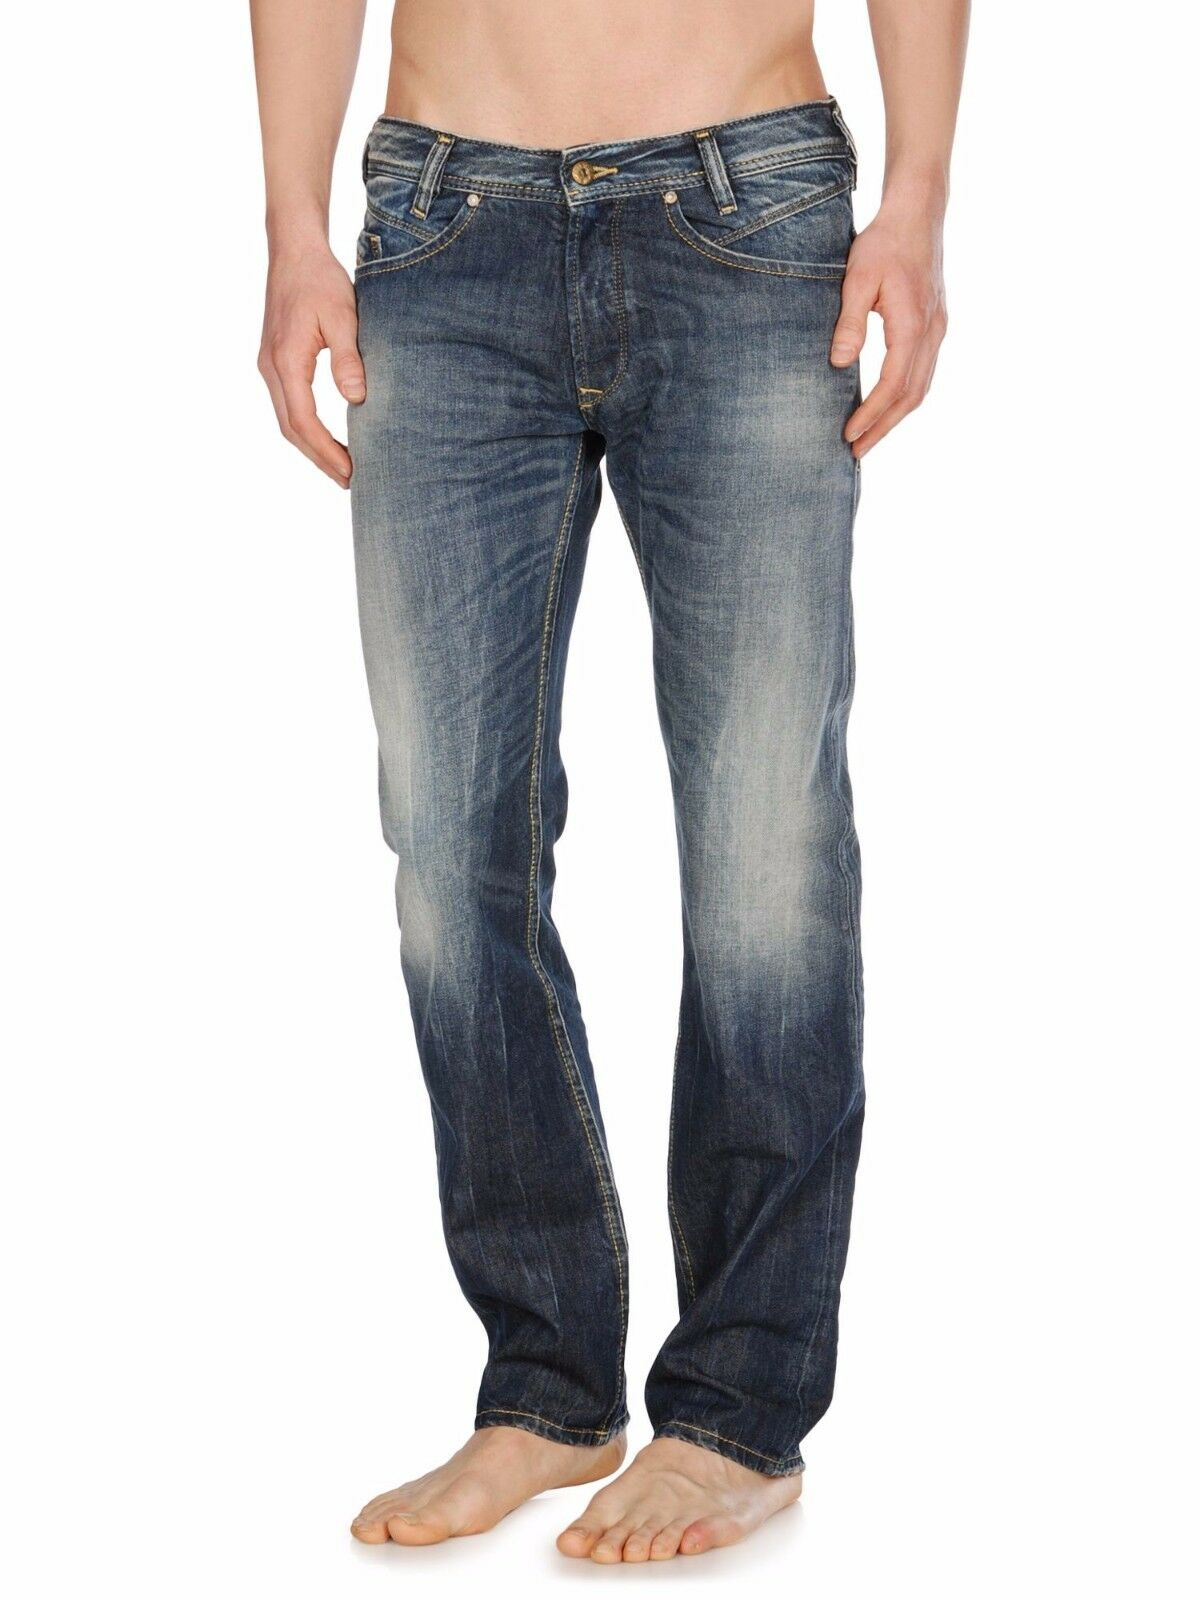 66b49be1 DIESEL Men's IAKOP 0814a Faded Slim-tapered Jeans Size W28 L32 /gsp ...